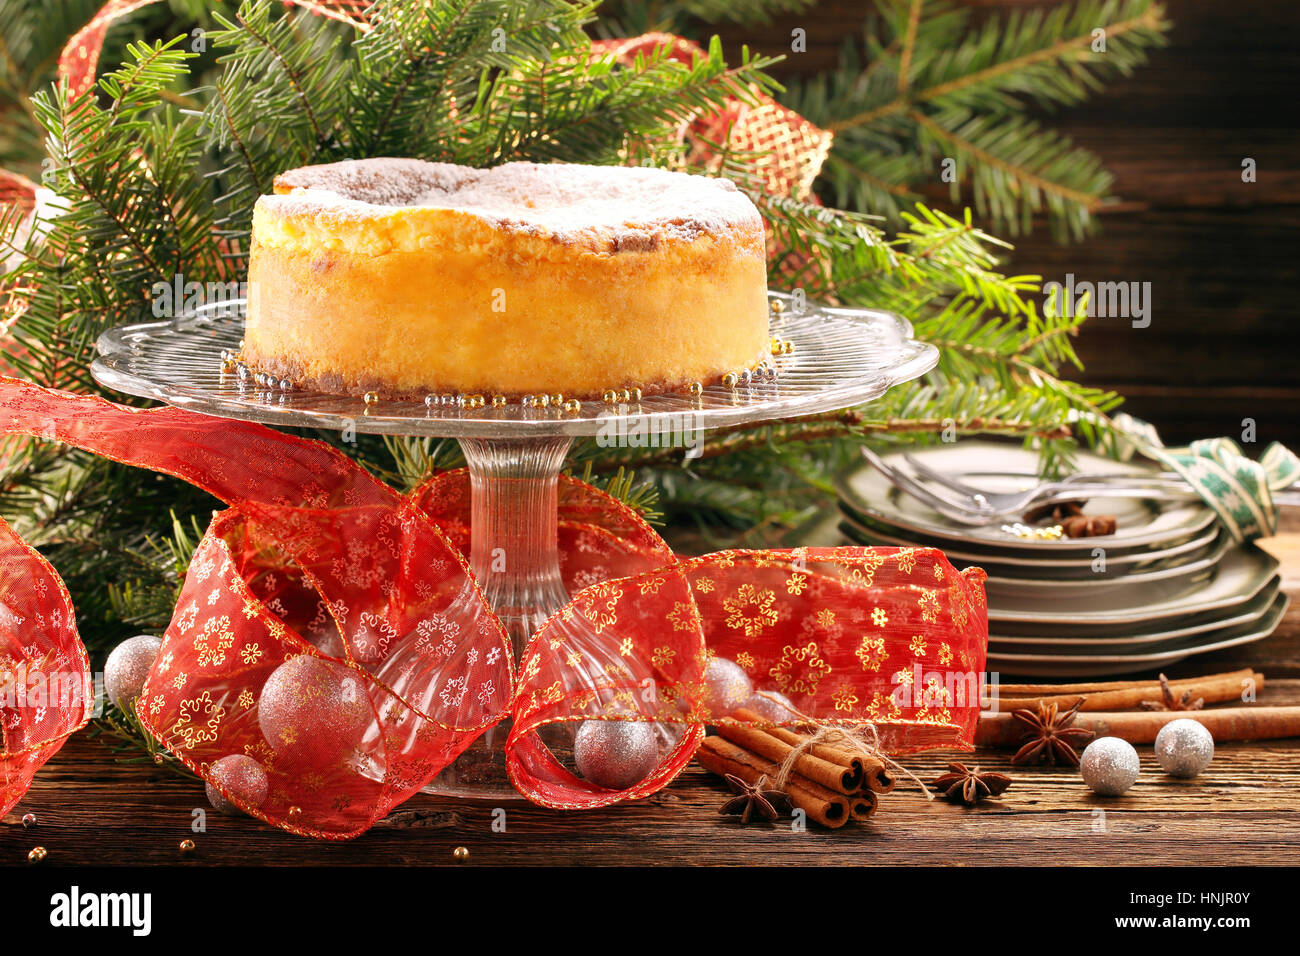 Traditional christmas cheese cake on wooden background - Stock Image